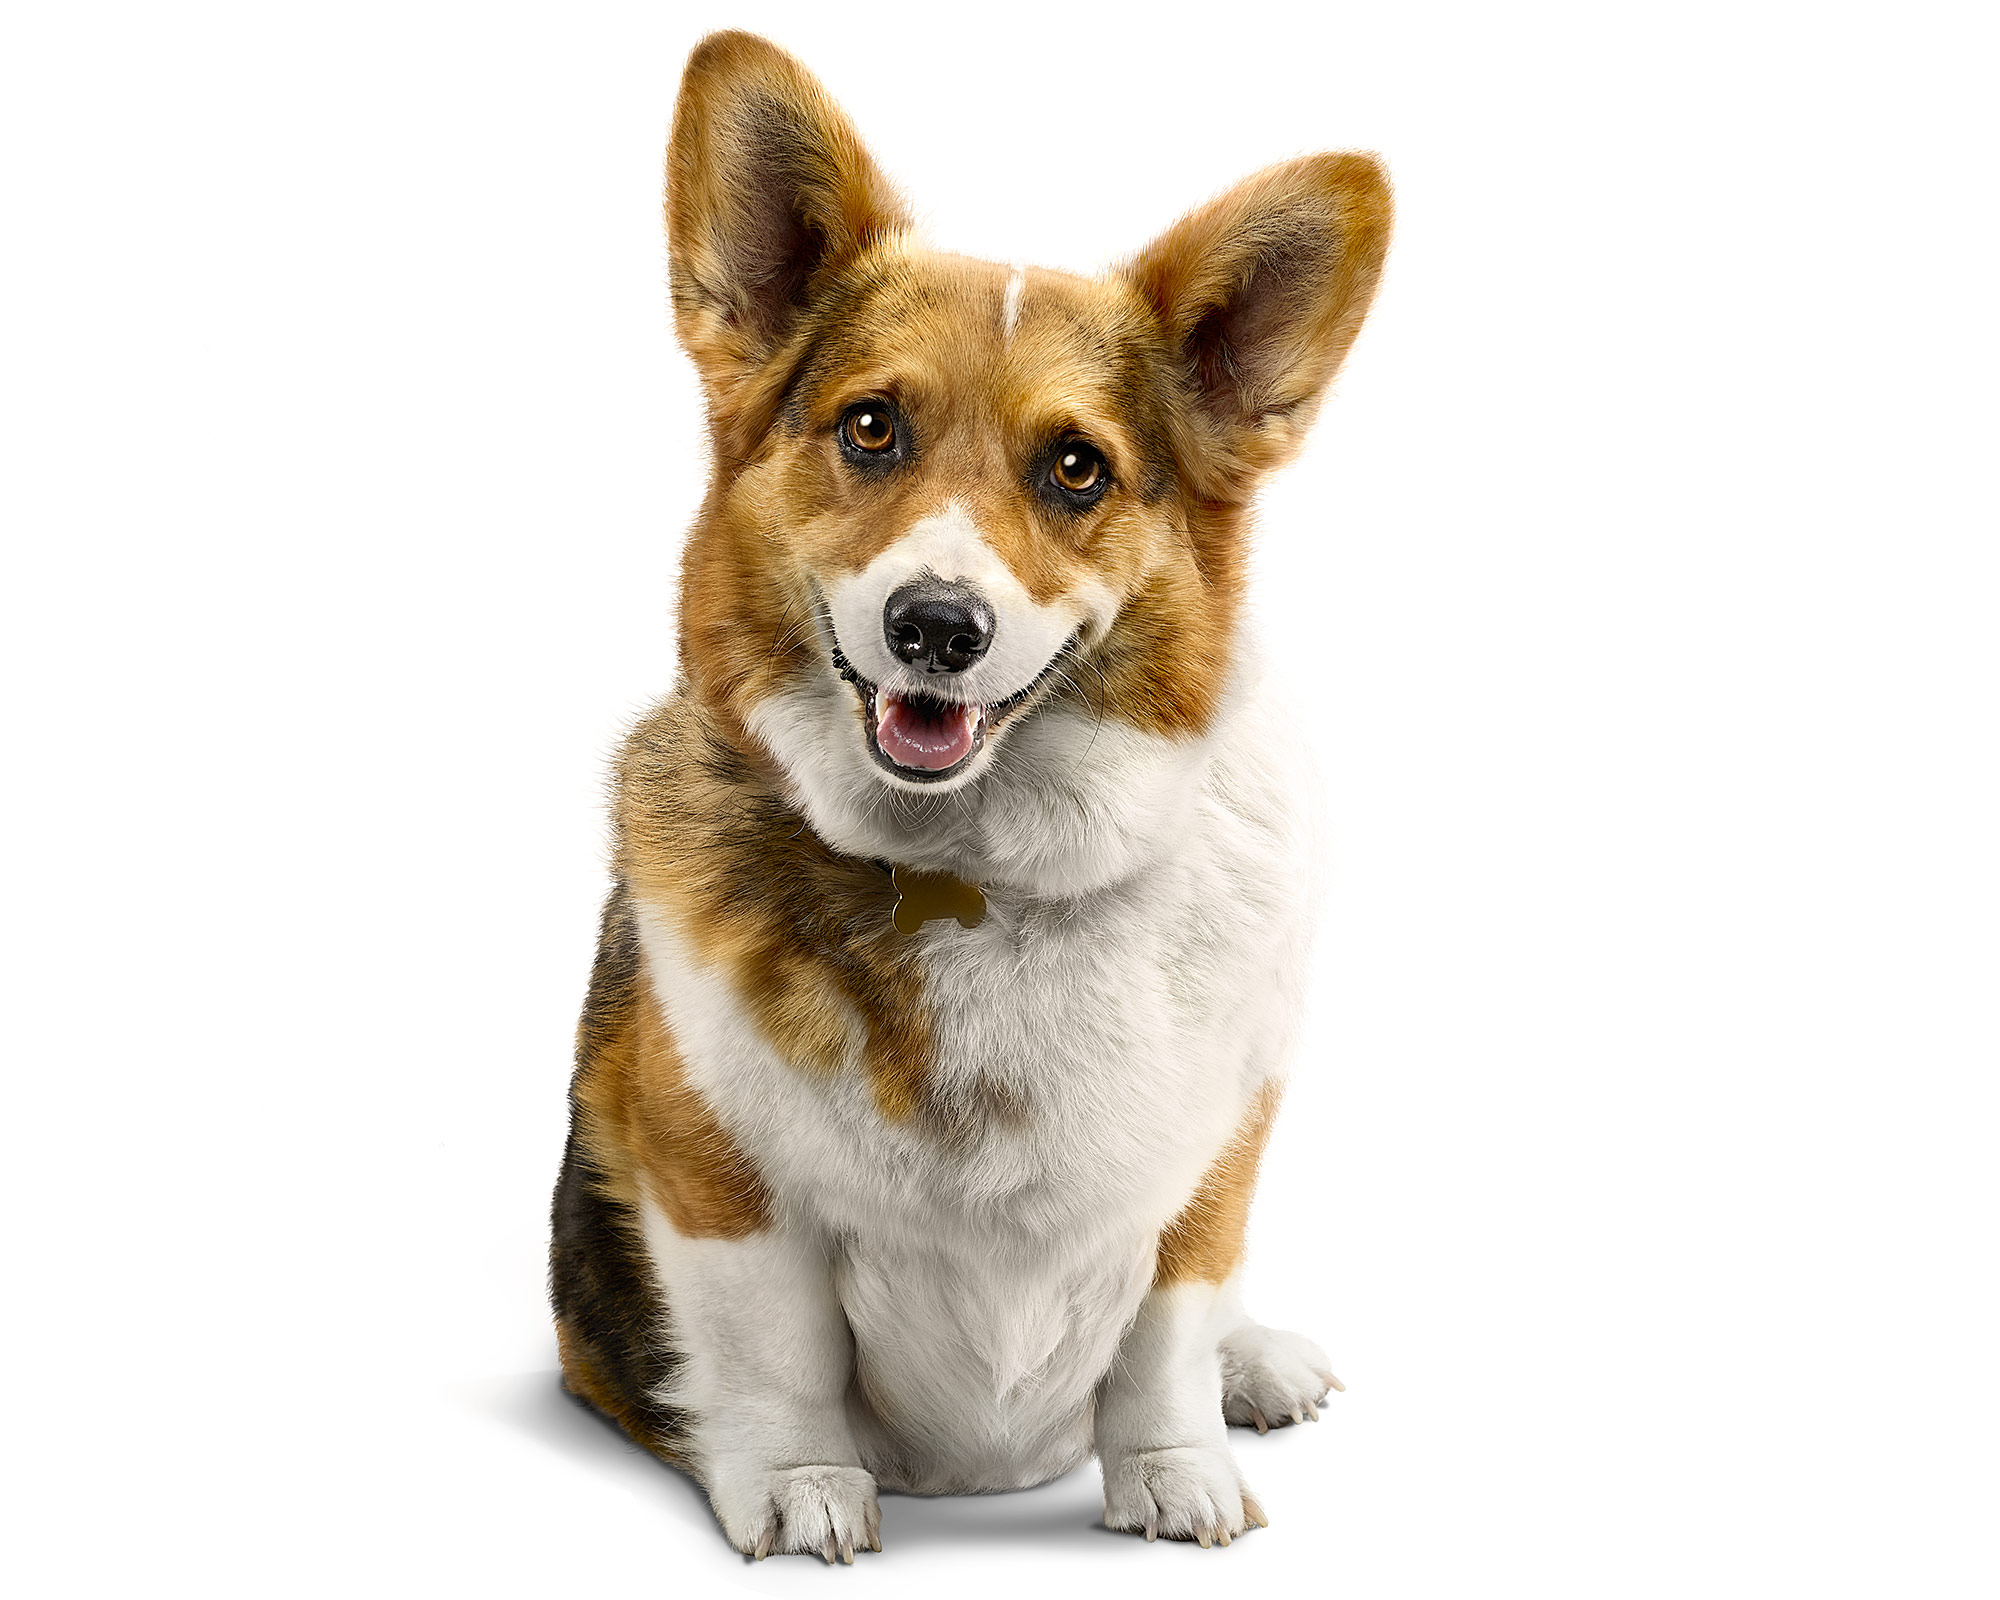 Welsh-Corgi-Dog-Puppy-Portrait-Photo